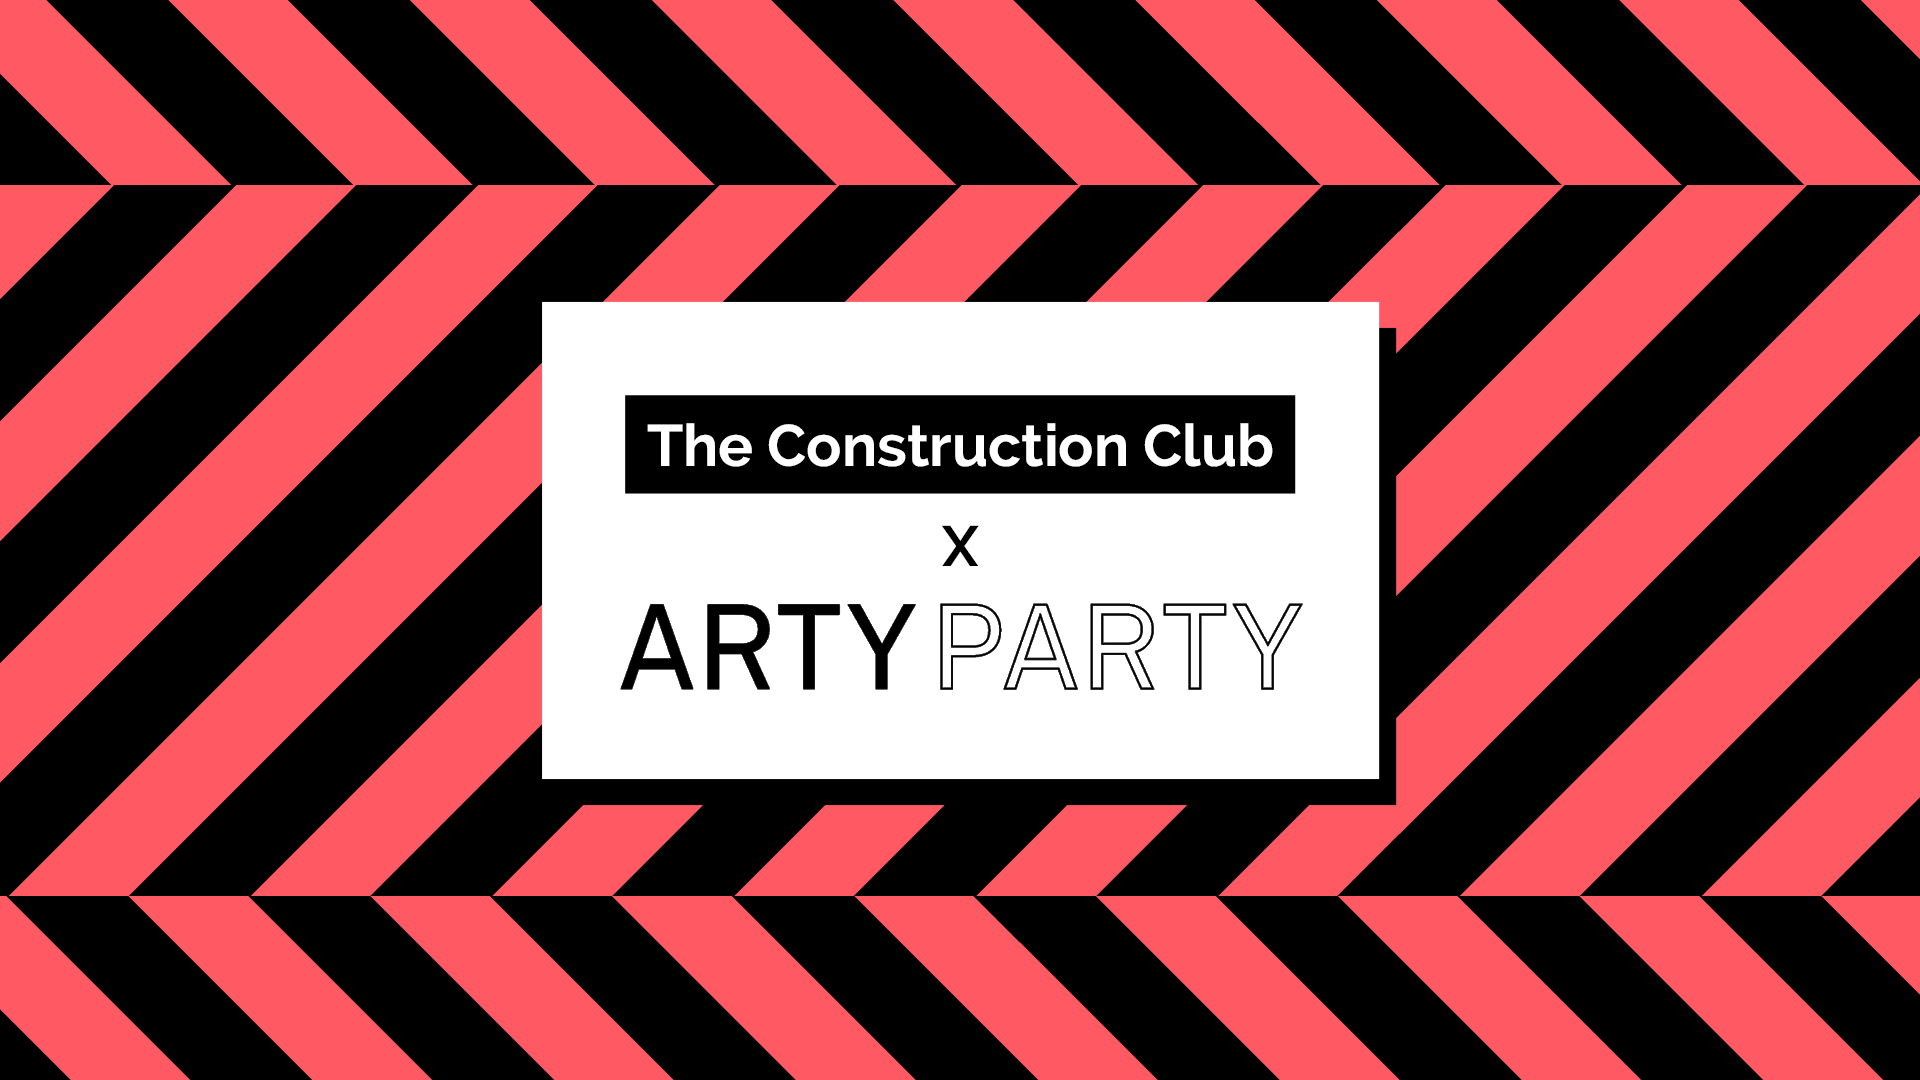 The Construction Club x ARTY PARTY